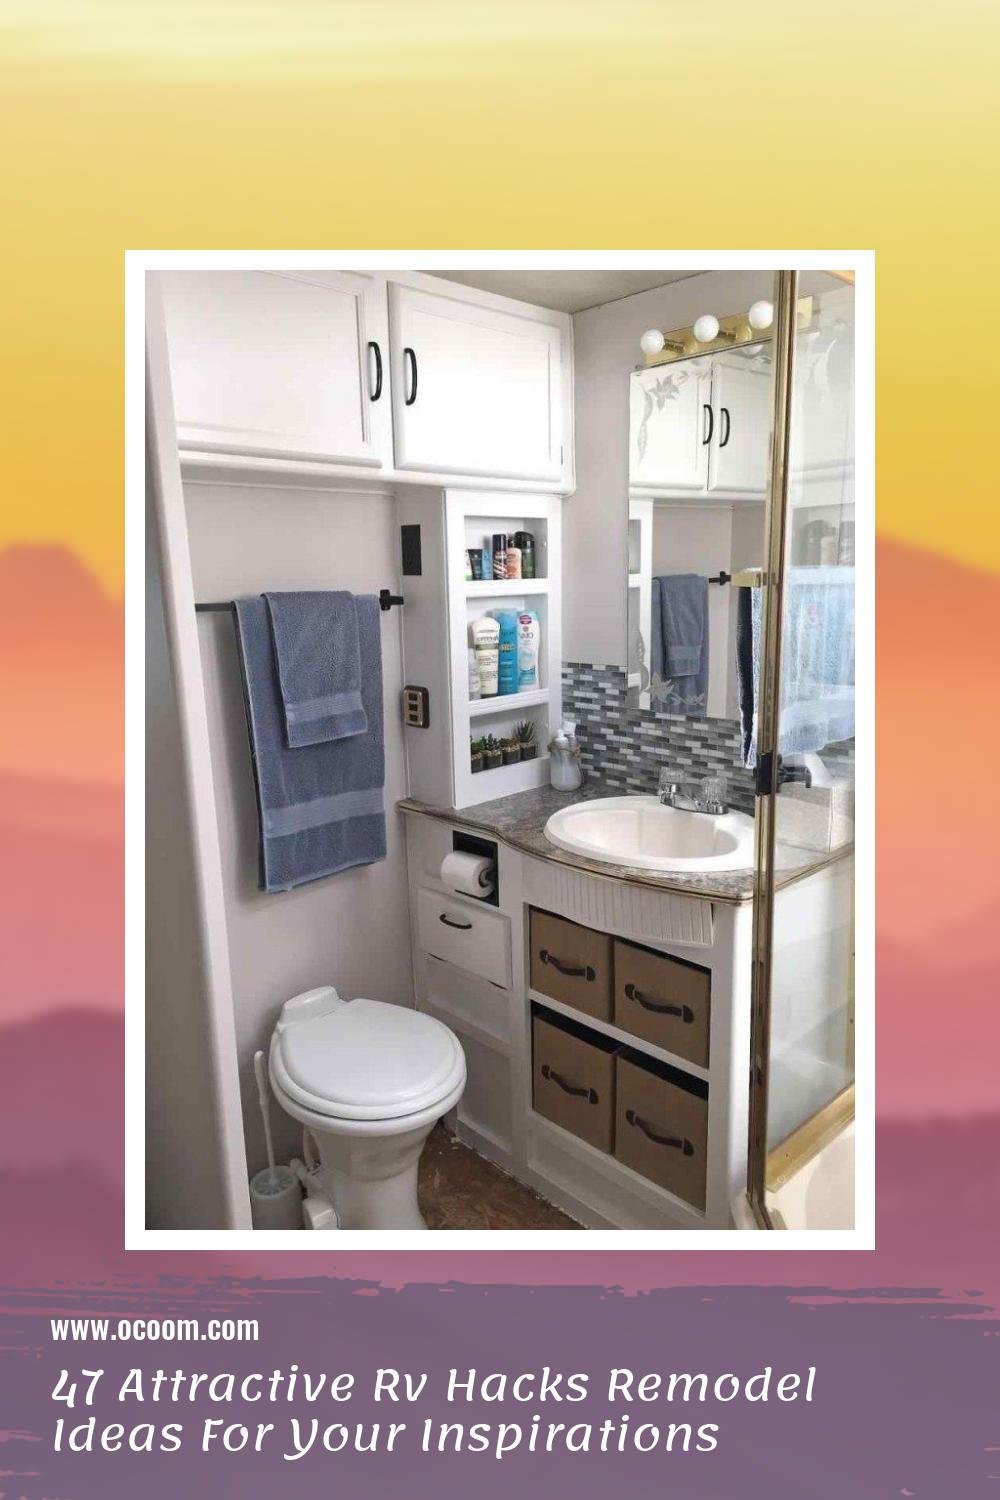 47 Attractive Rv Hacks Remodel Ideas For Your Inspirations 46